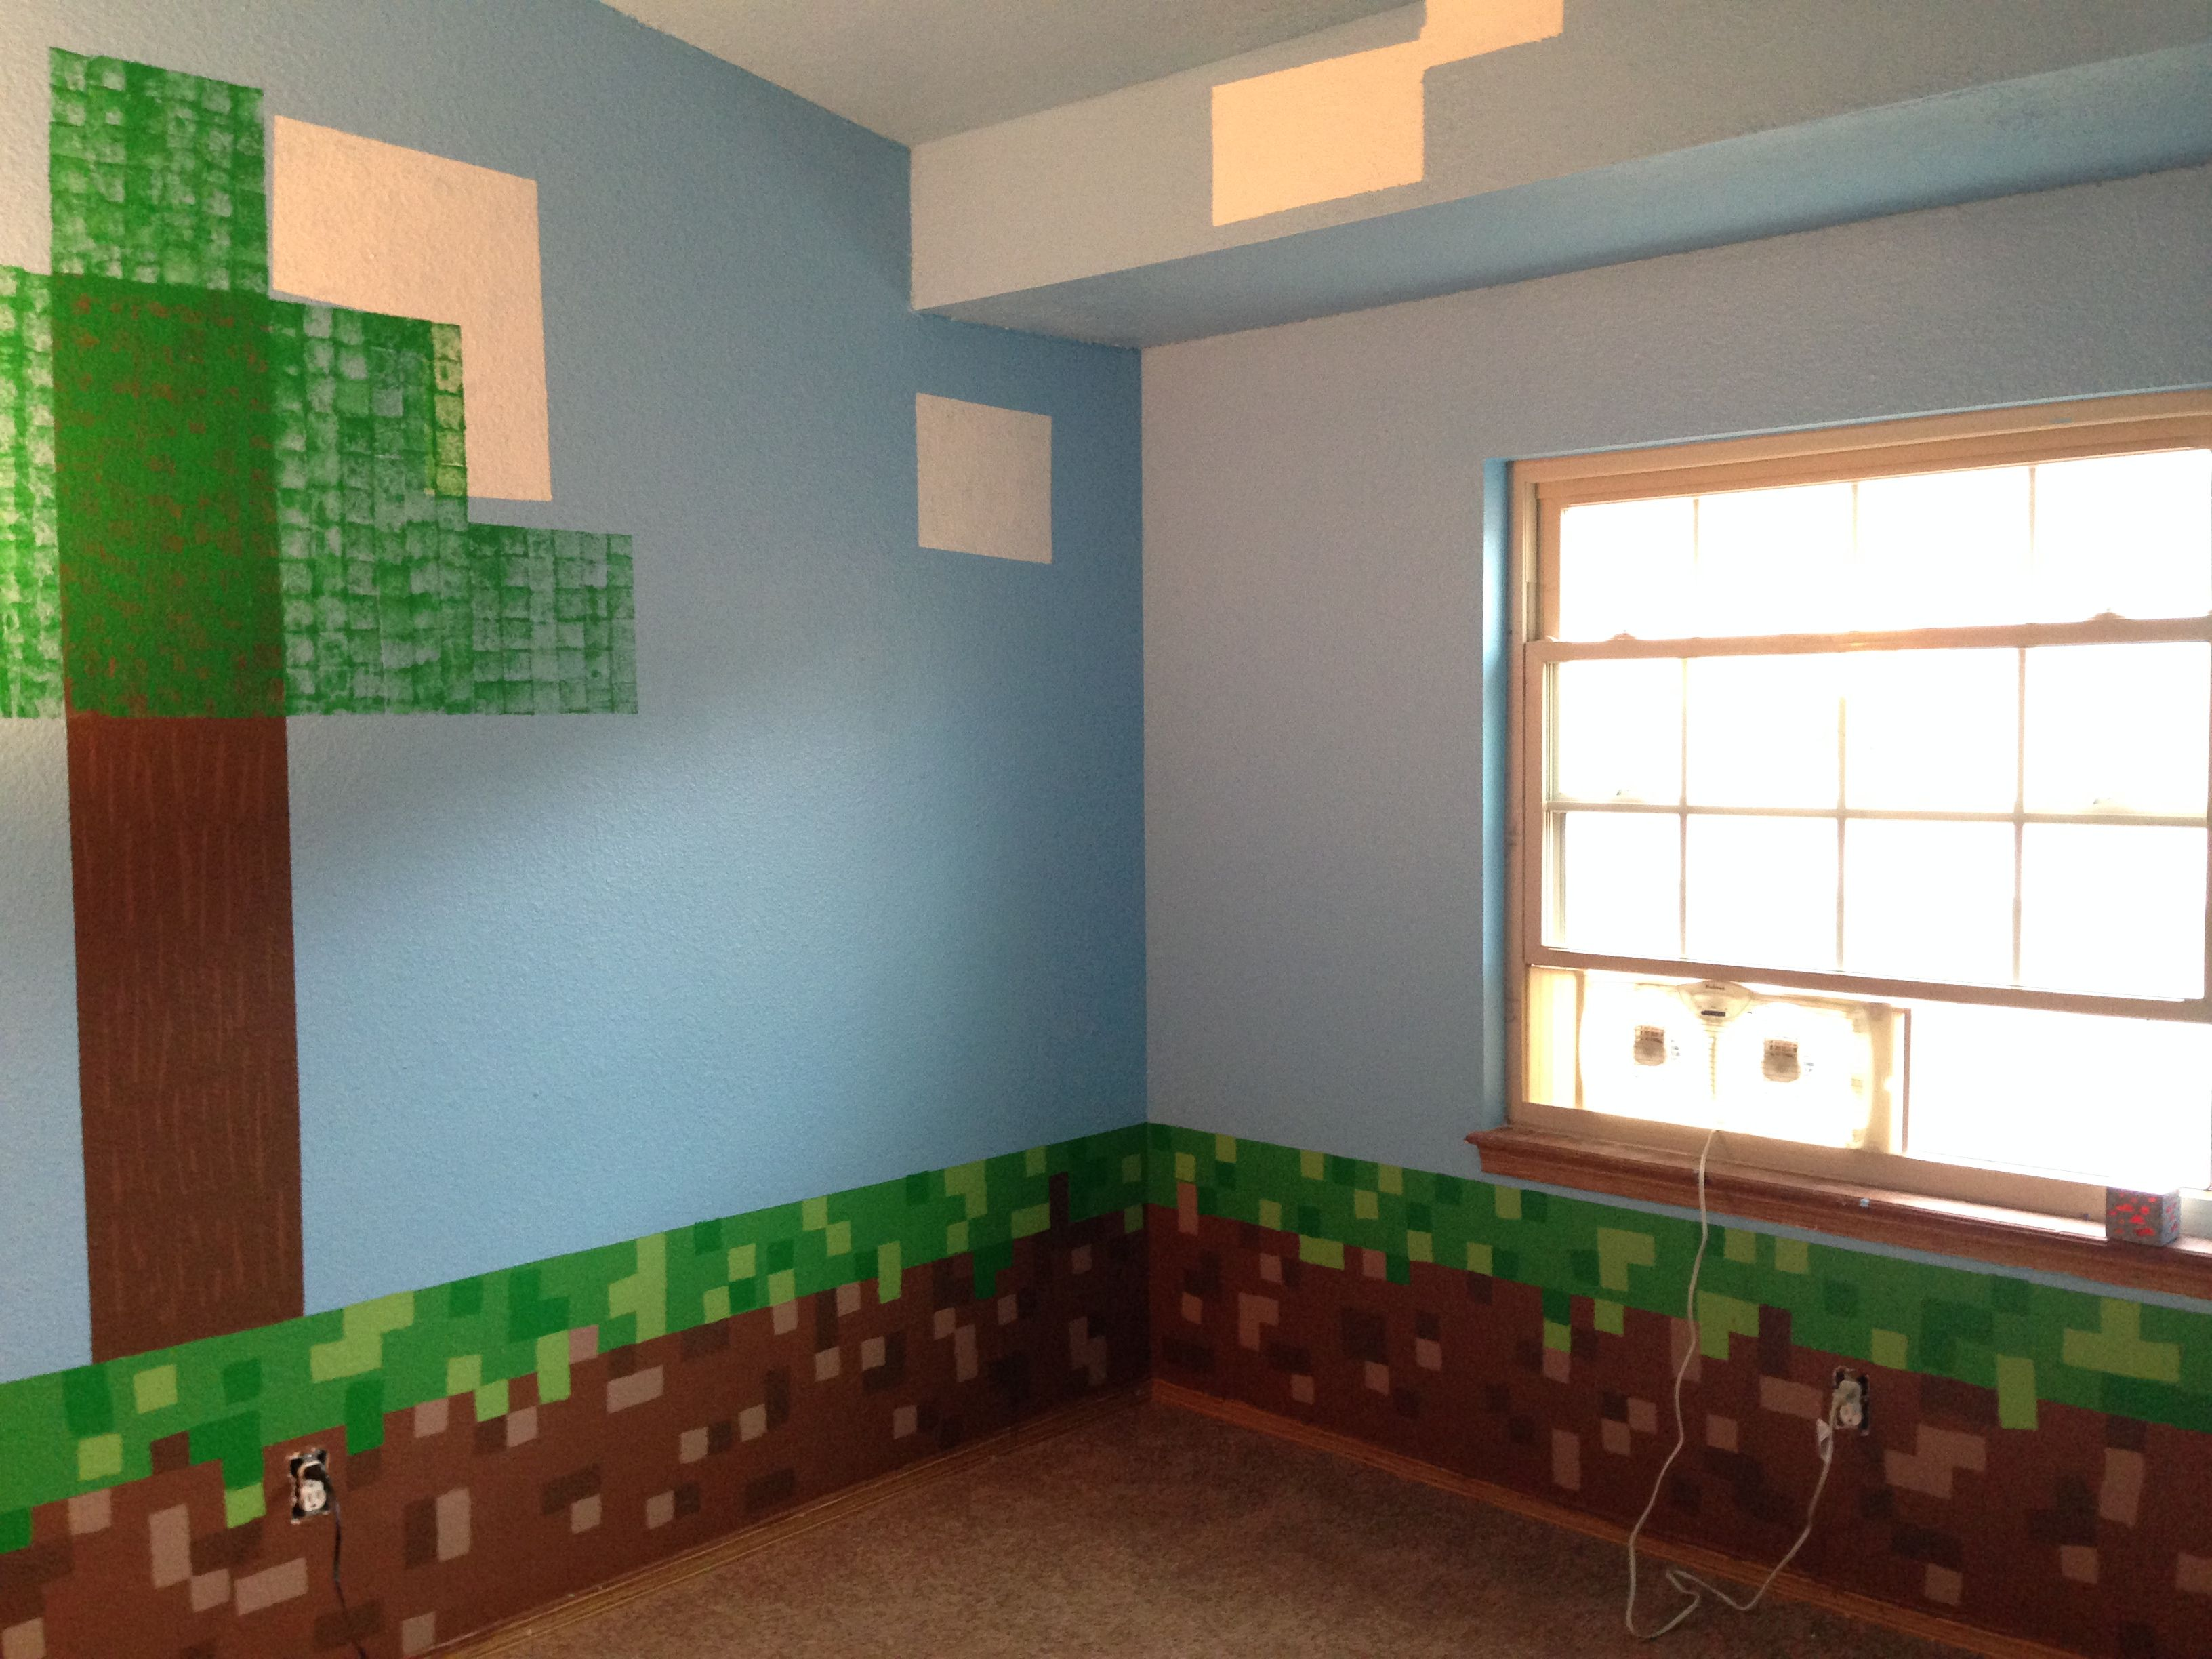 Minecraft Decorations For Bedroom Amazing Minecraft Bedroom Decor Ideas Decor Amazing Minecraft